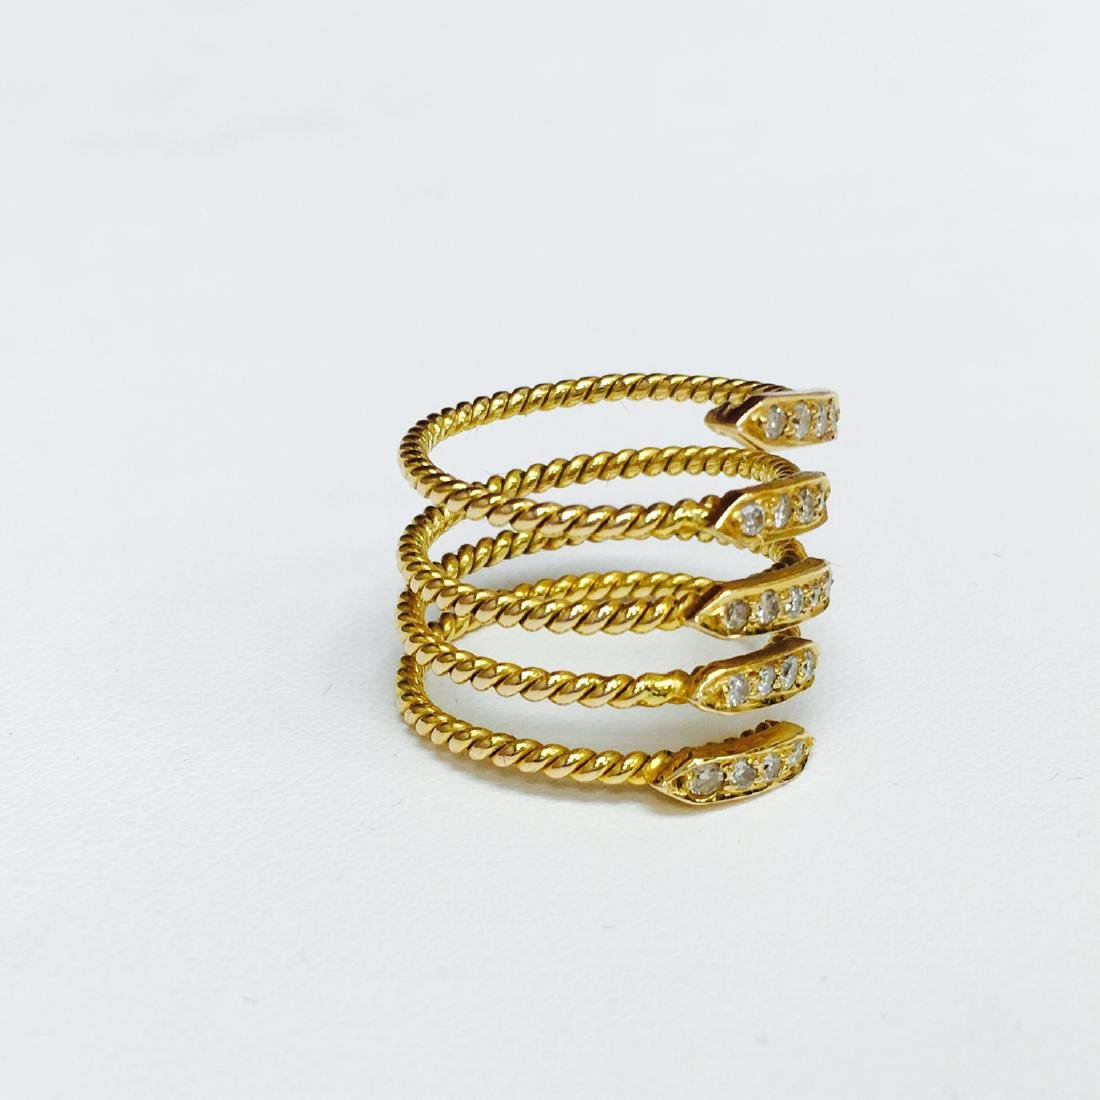 VVS Diamonds, 18K Yellow Gold Coil Design Ring - 2